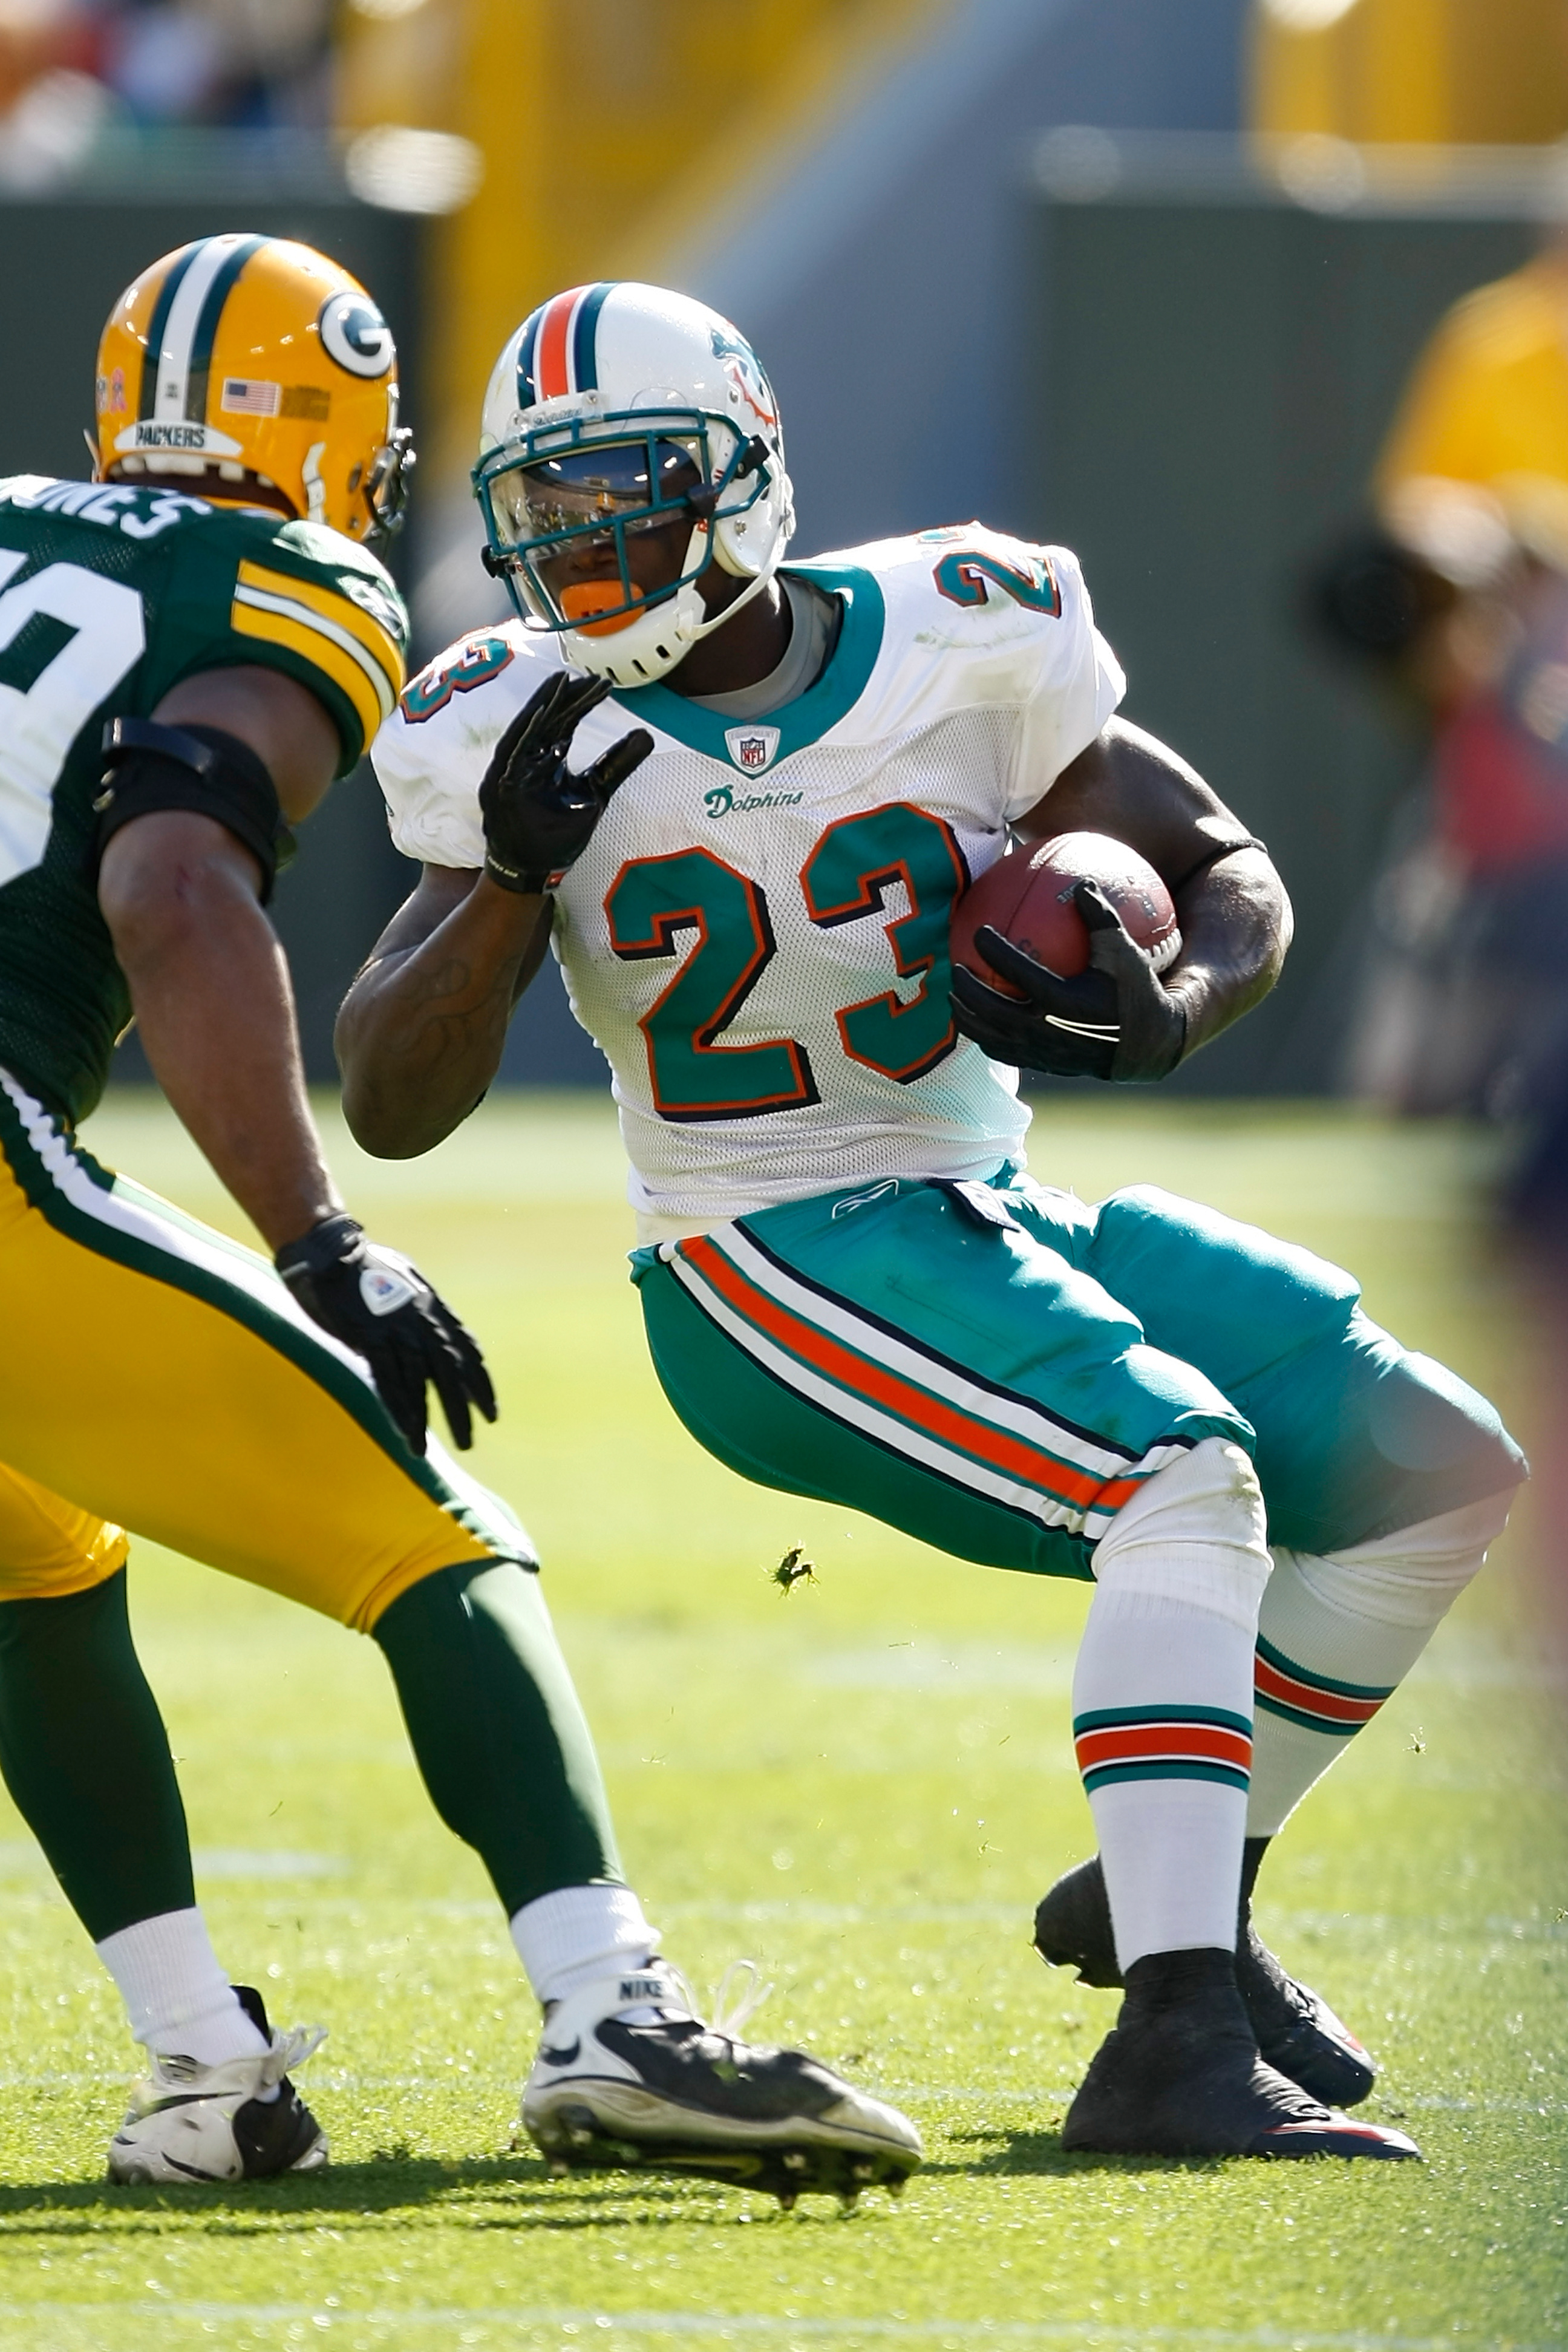 GREEN BAY, WI - OCTOBER 17: Ronnie Brown #23 of the Miami Dolphins runs against the Green Bay Packers at Lambeau Field on October 17, 2010 in Green Bay, Wisconsin. (Photo by Scott Boehm/Getty Images)